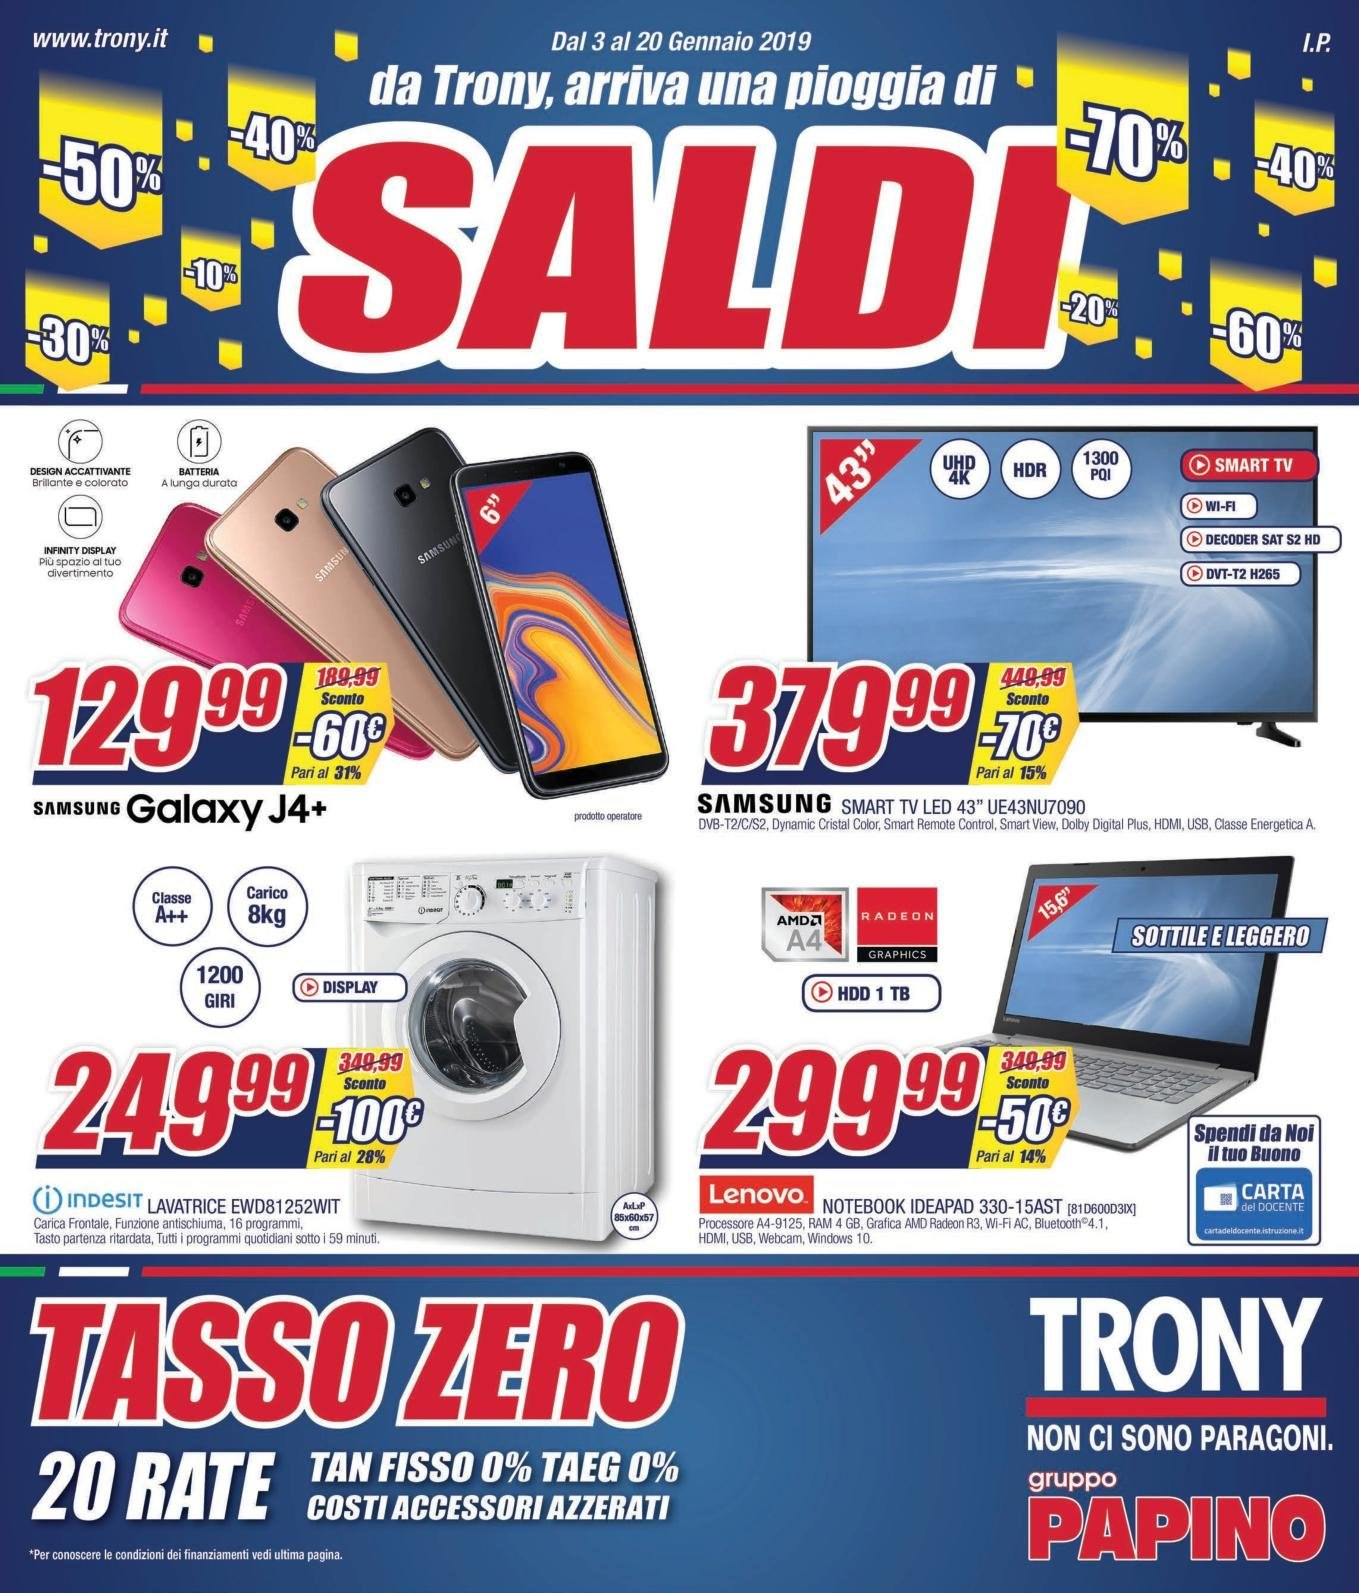 Volantino Trony - 3.1.2019 - 20.1.2019 - Prodotti in offerta - amd, decoder, dolby digital, radeon, samsung, smart tv, wifi, tv led, usb, indesit, galaxy, notebook, lenovo, hdd, hdmi, led, lavatrice. Pagina 1.